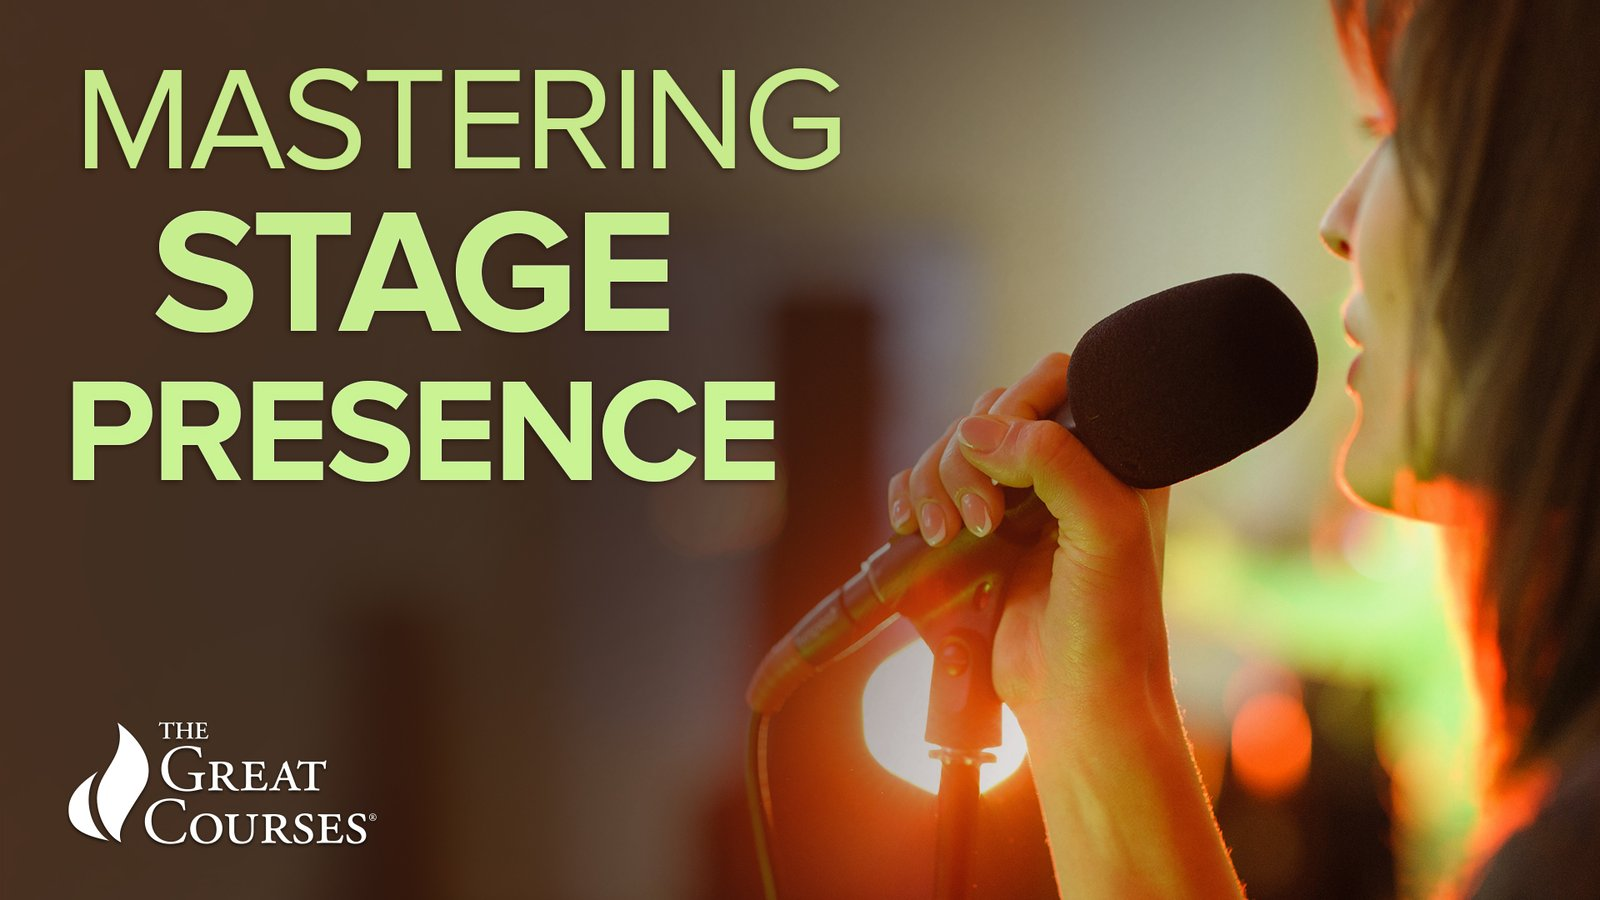 Mastering Stage Presence - How to Present to Any Audience